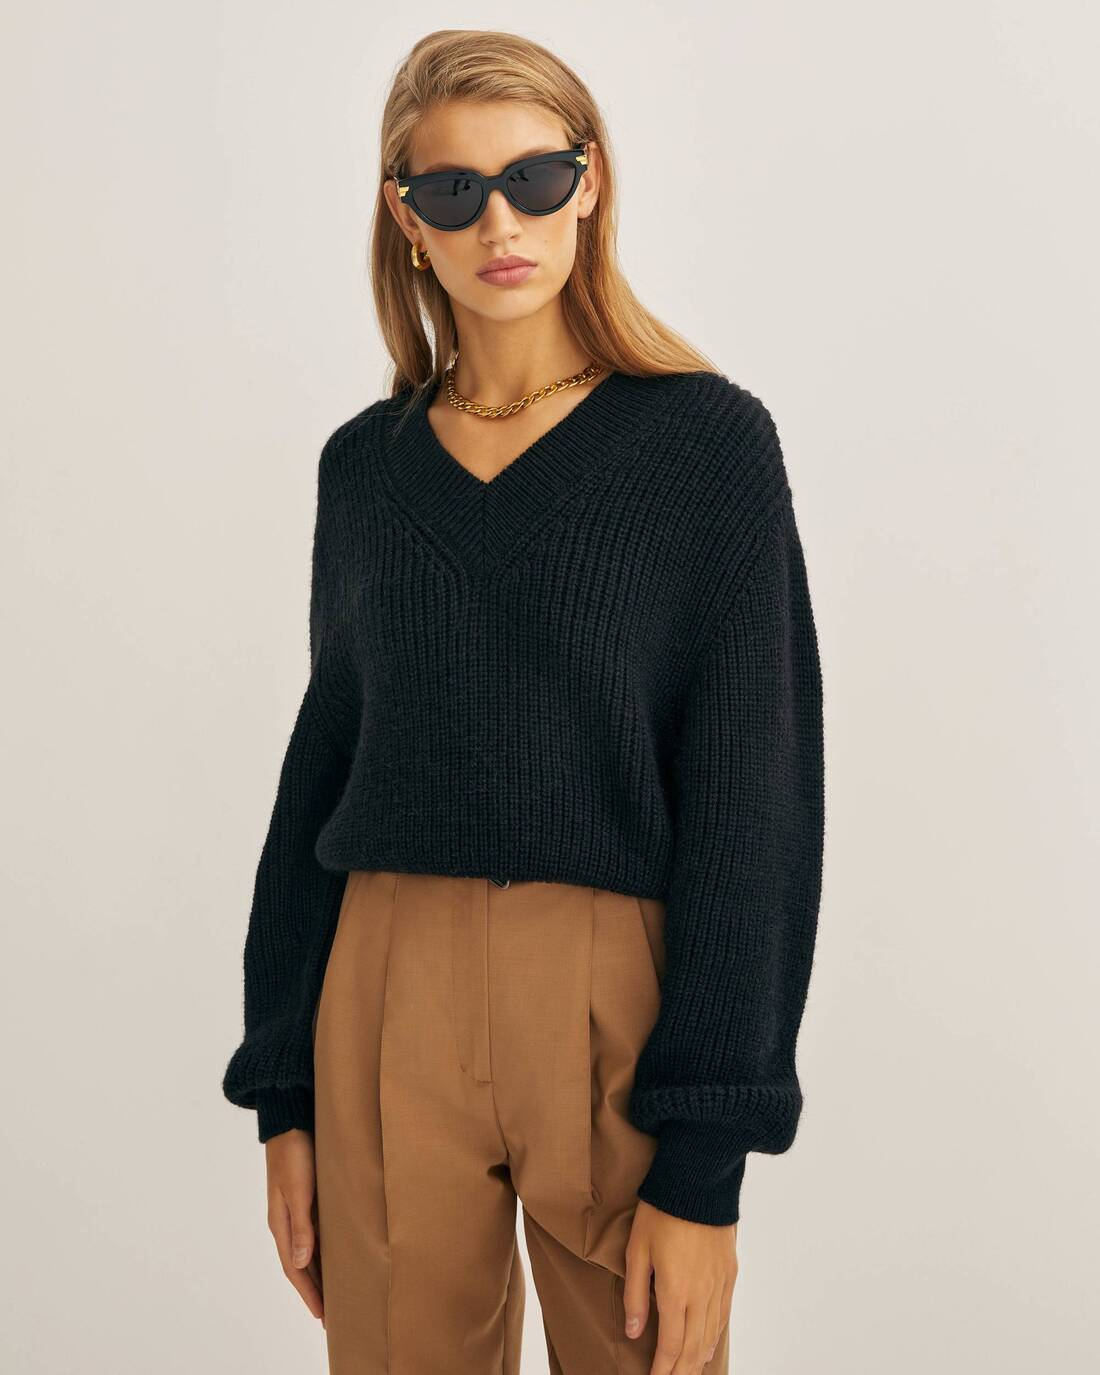 Cropped V neck sweater